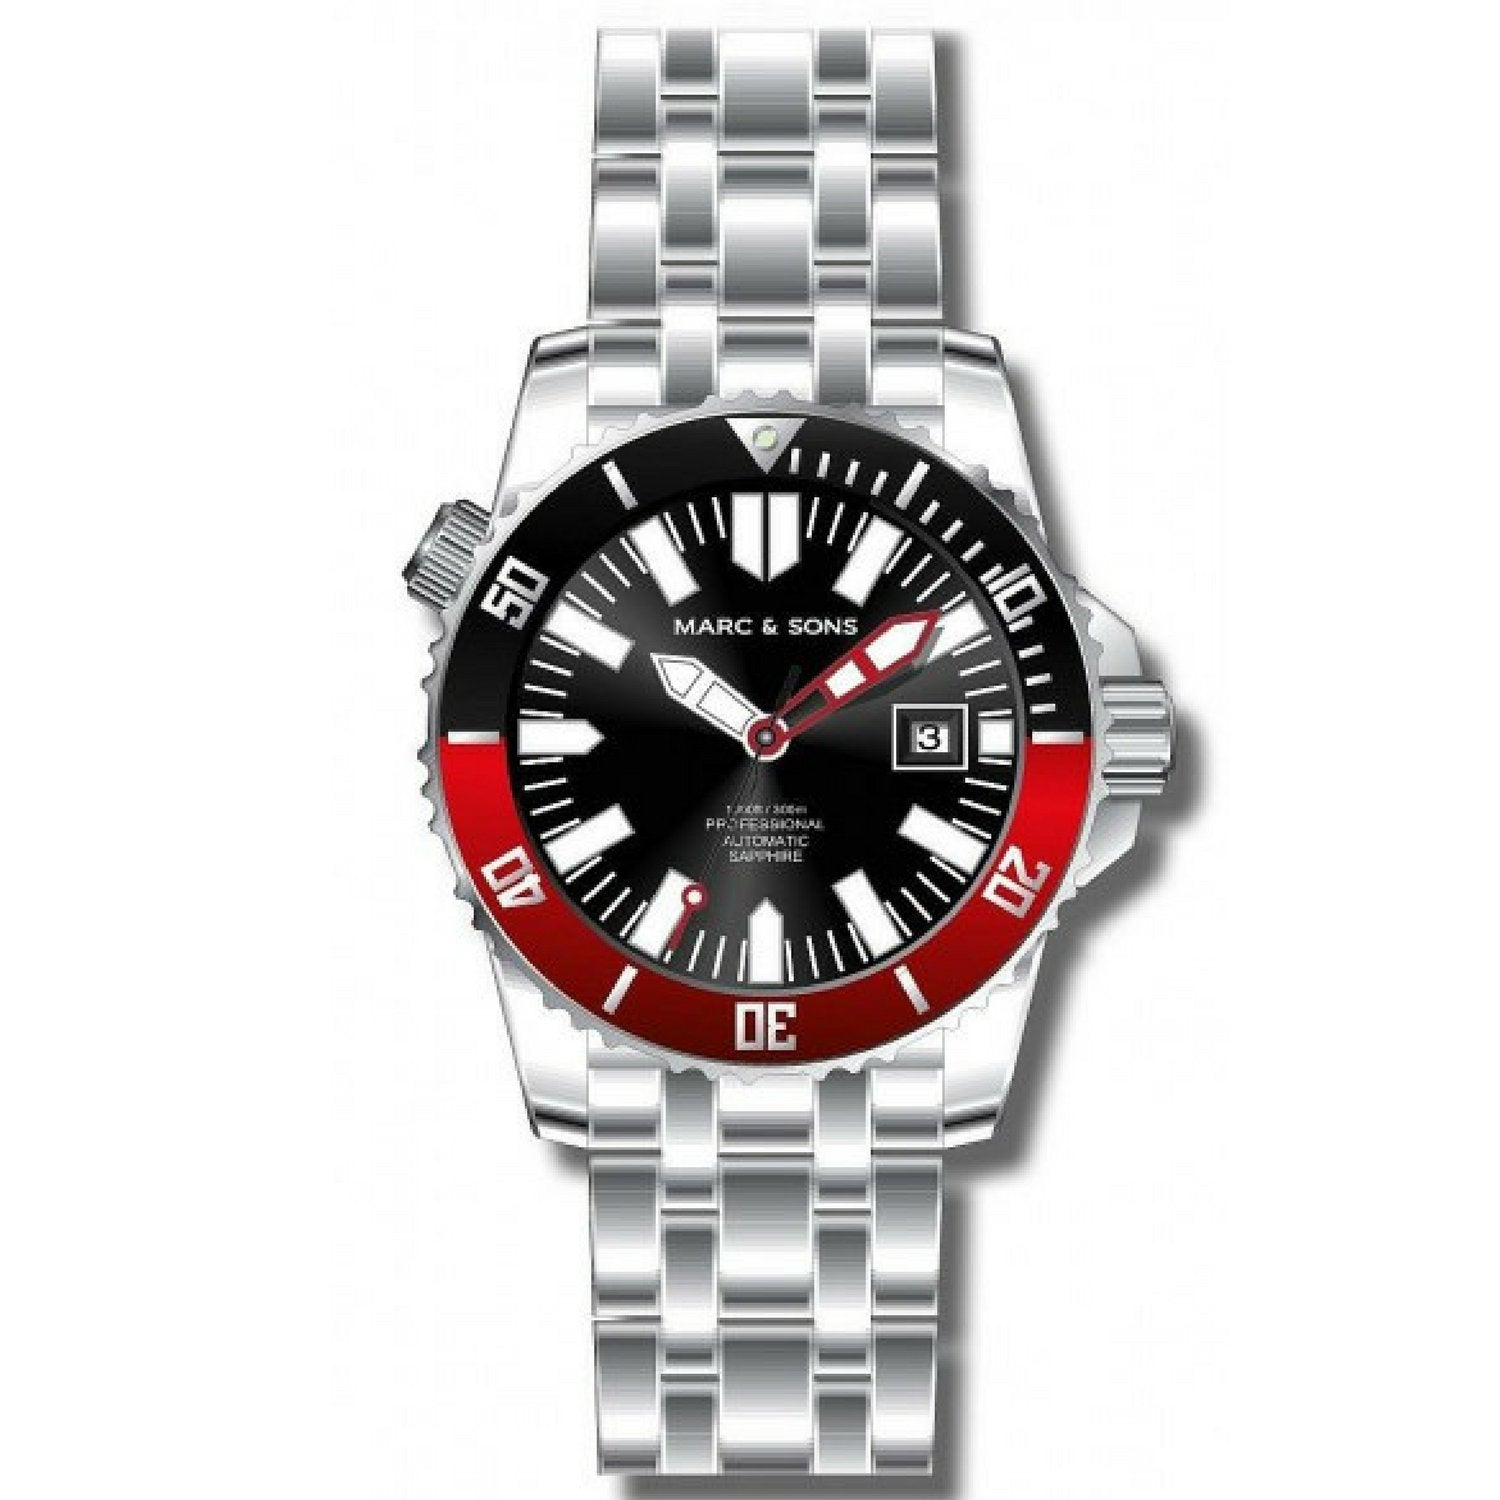 MARC & SONS 300M Professional automatic Diver watch MSD-032